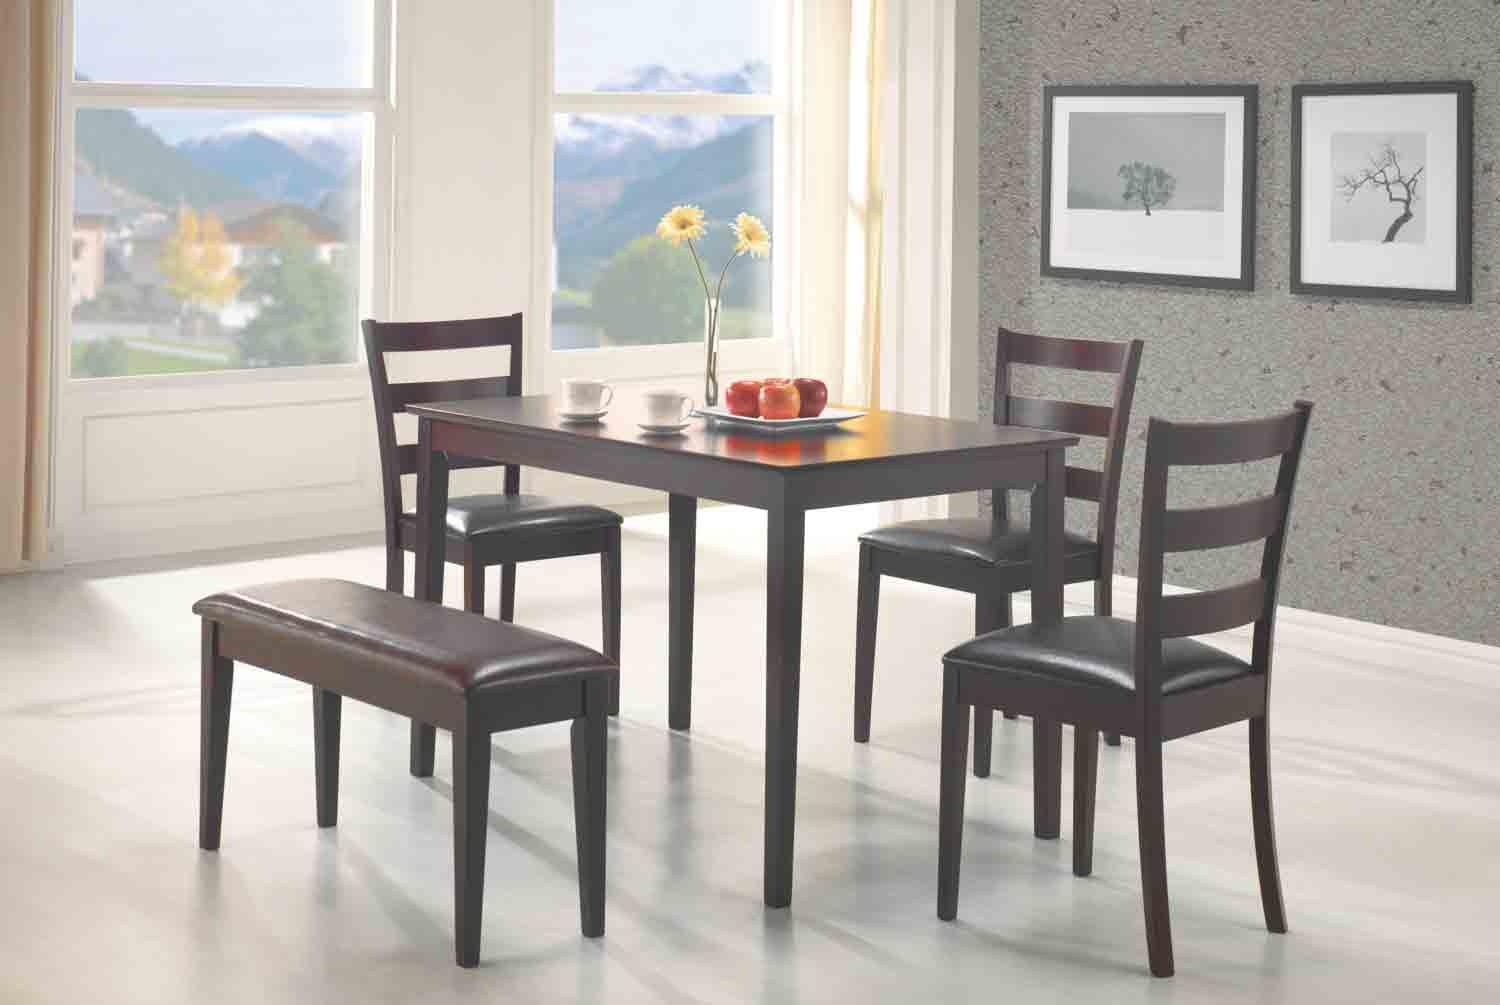 5 PCS Dining Set Table, 3 Chairs and Bench DC Furniture